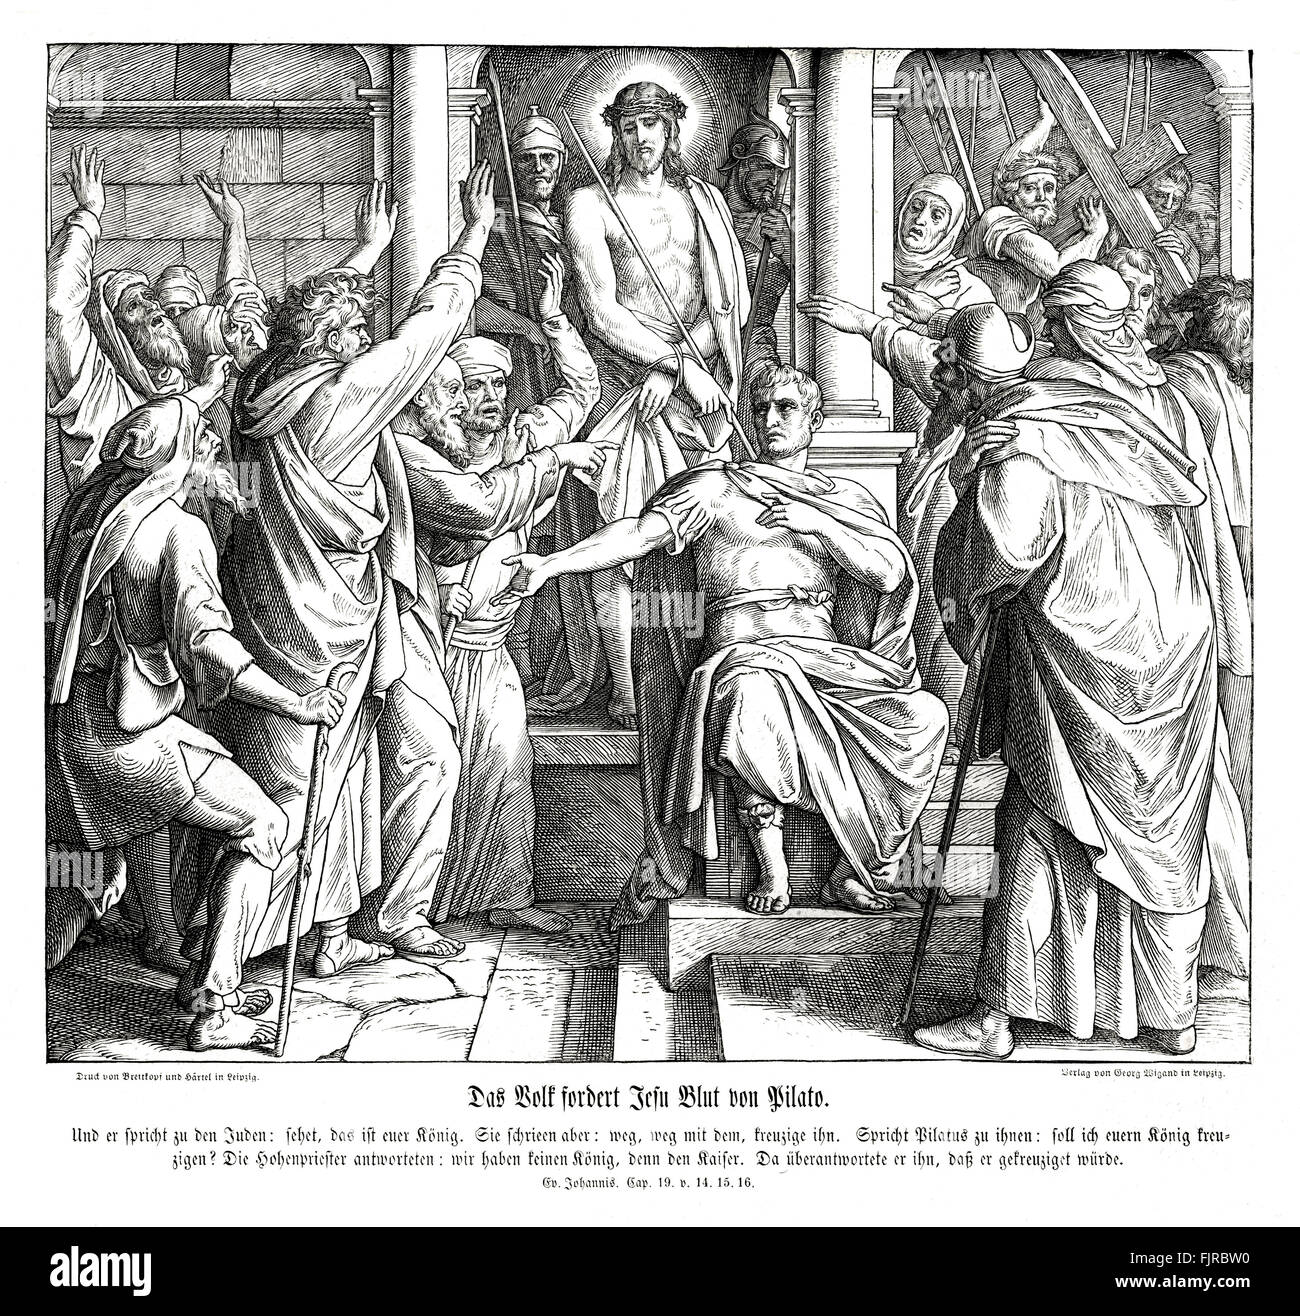 The people demand the death of Jesus from Pilate, Gospel of John chapter XIX verses 14 - 16 'And it was the - Stock Image